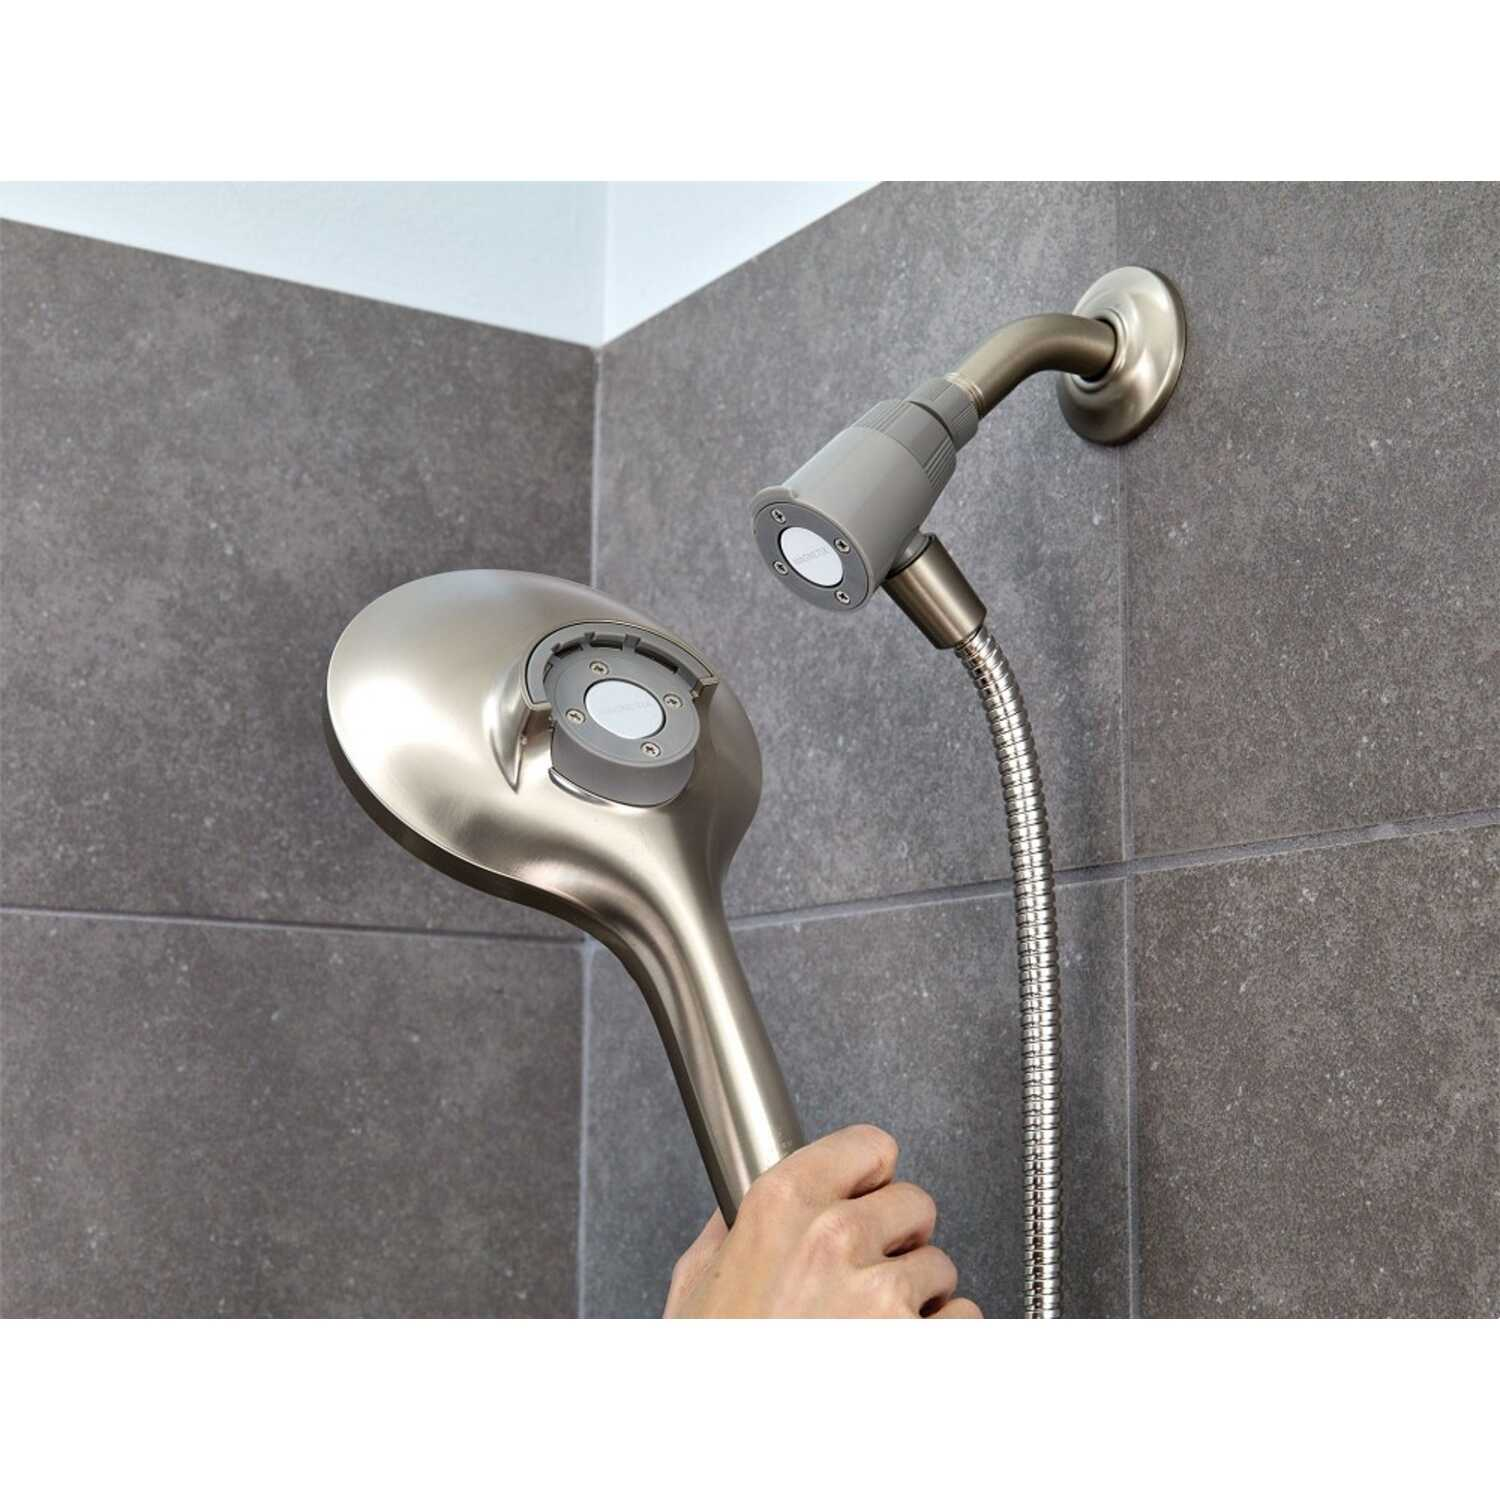 Moen  Engage  Brushed  Nickel  6 settings Handheld Showerhead  2 gpm